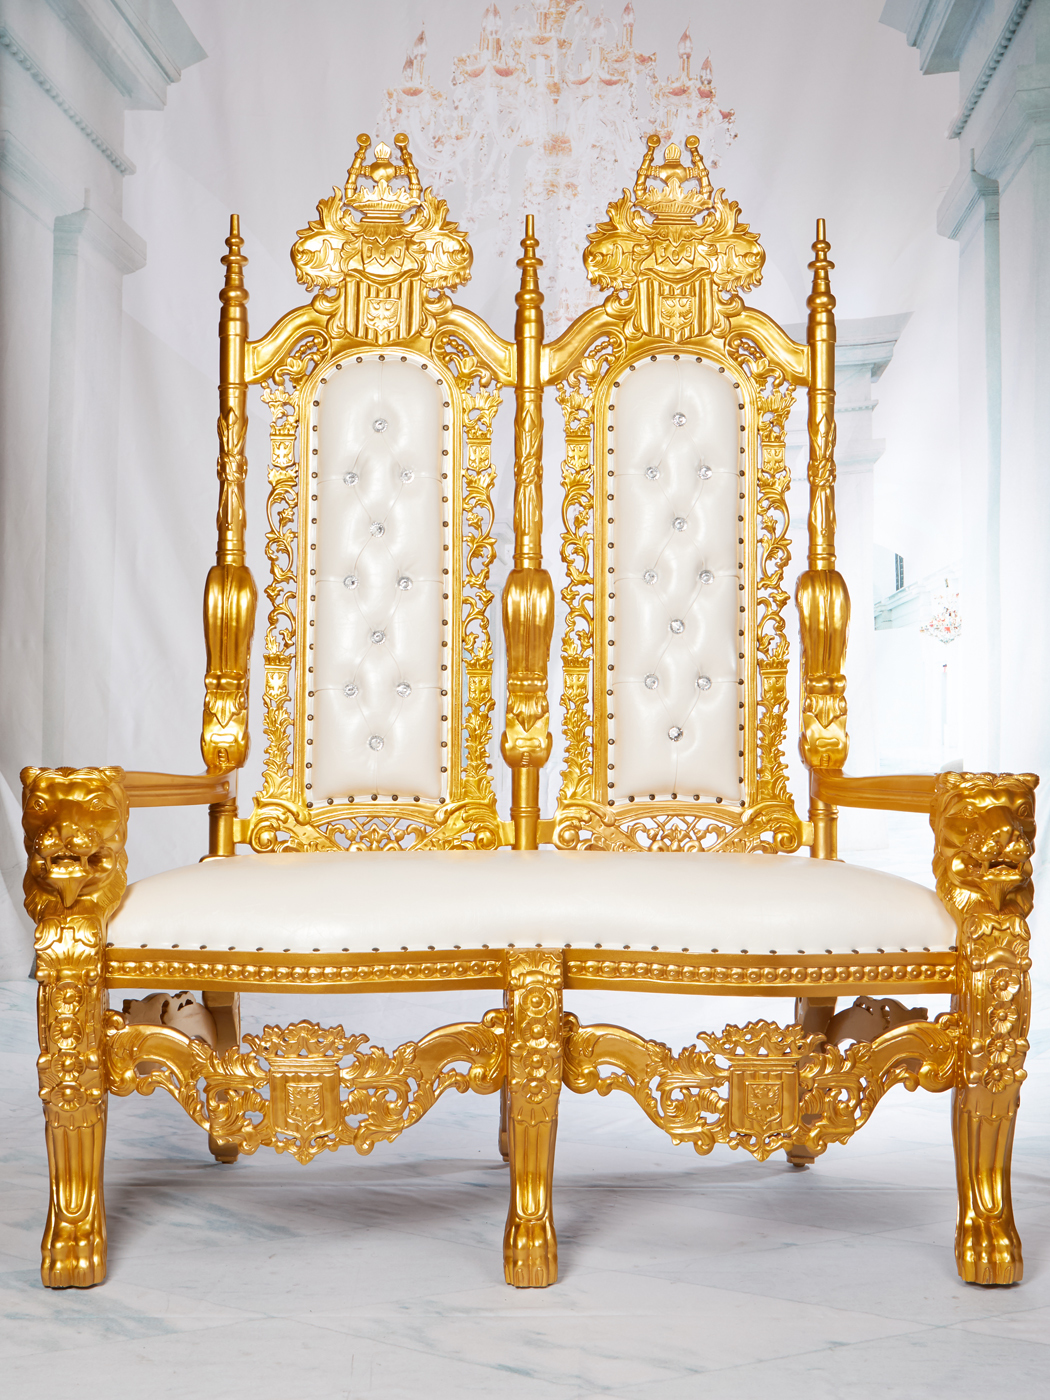 Stupendous King David High Back Double Lion Throne And 50 Similar Items Dailytribune Chair Design For Home Dailytribuneorg